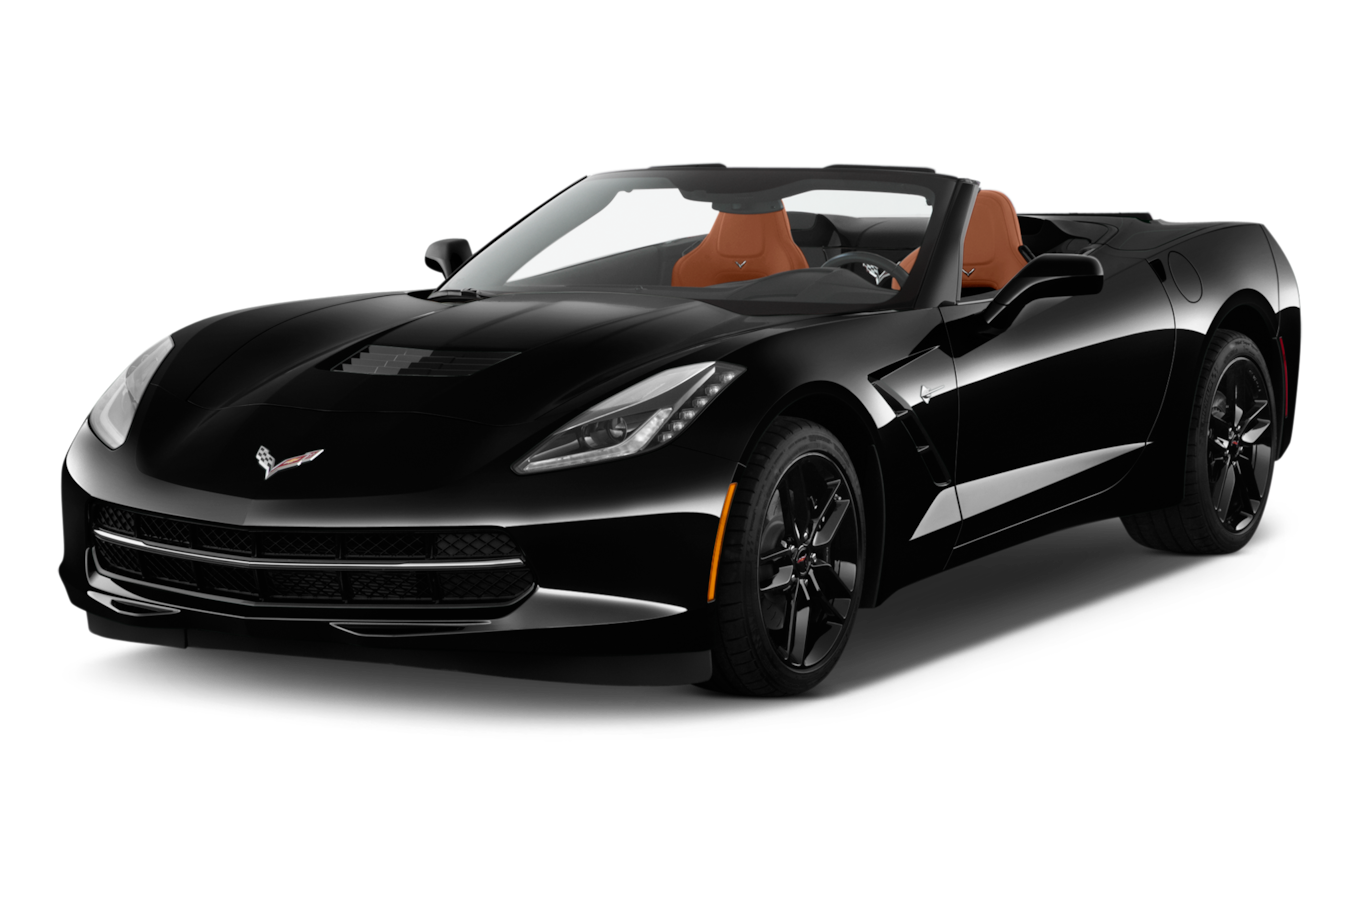 47 The Best 2019 Corvette Stingray Photos